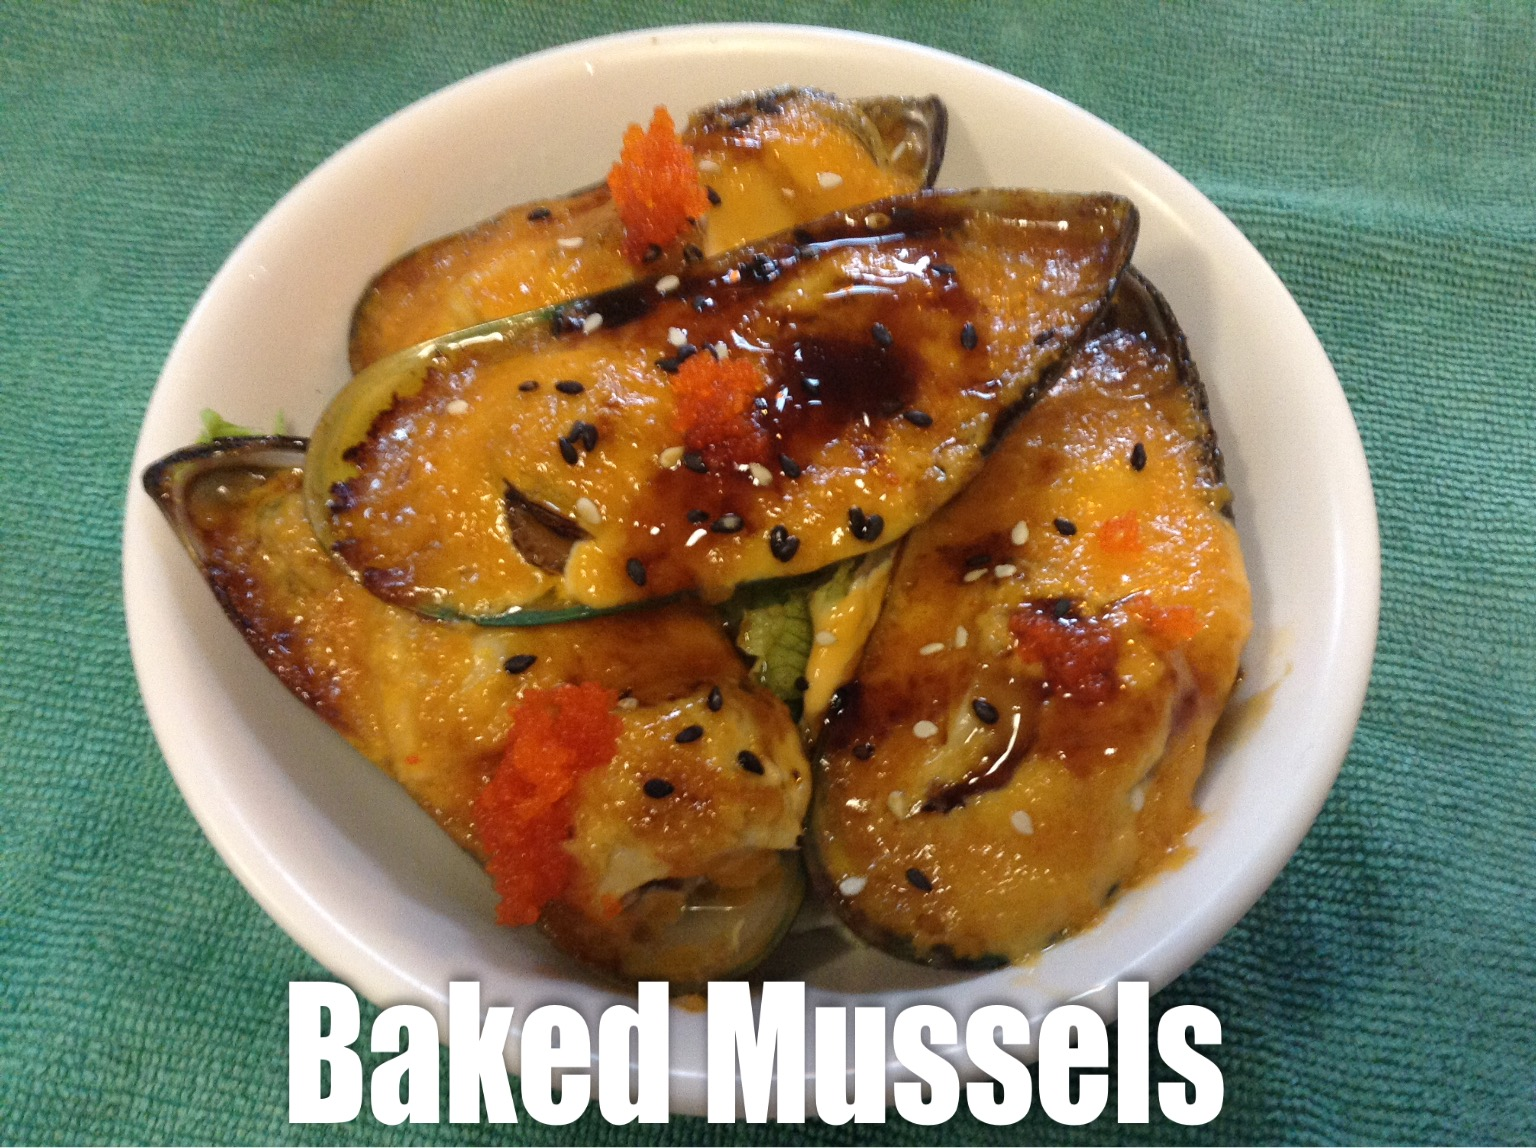 Baked Mussels (4) Image